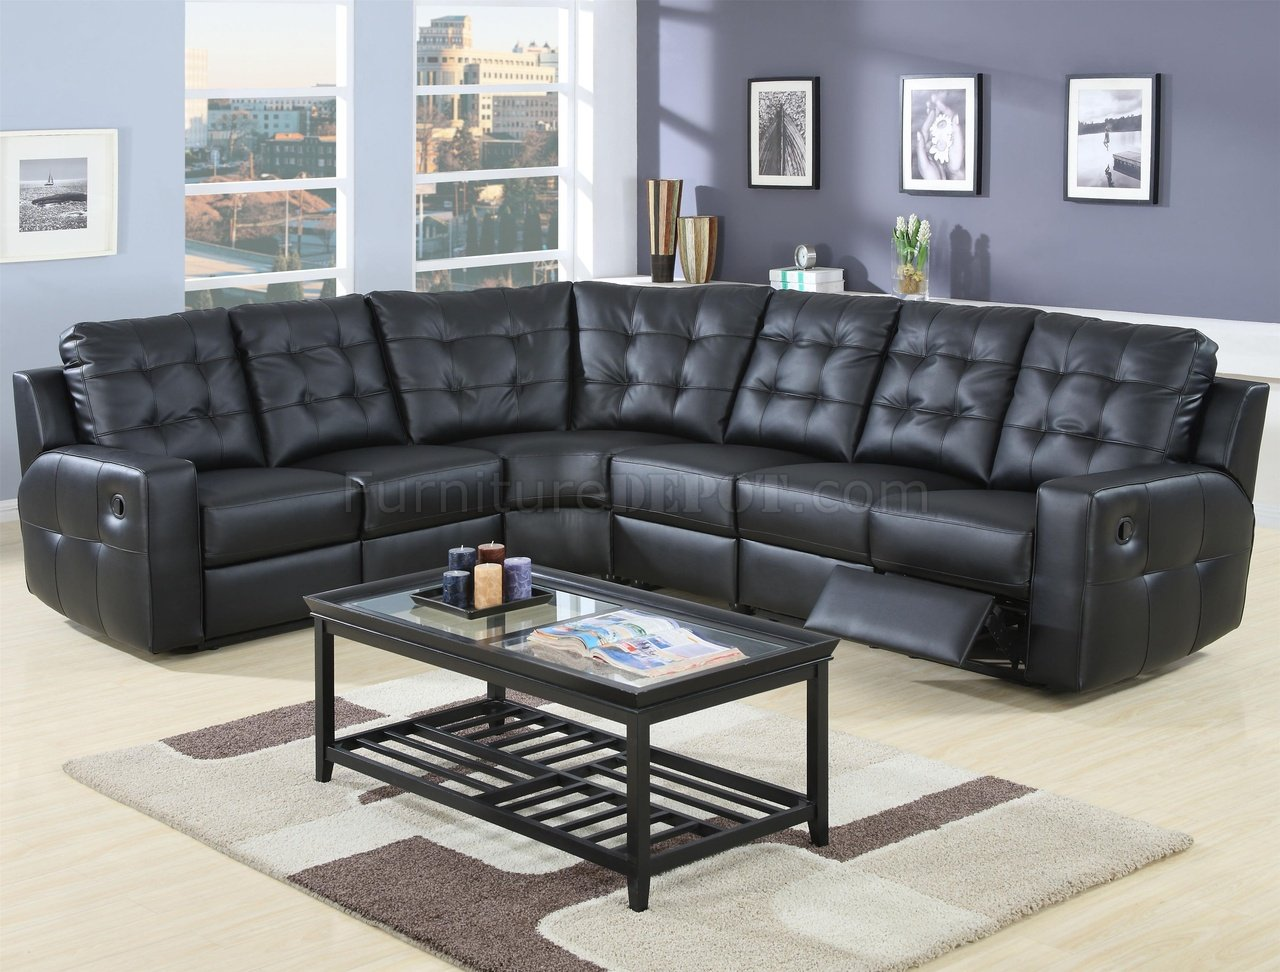 modern leather double reclining sectional sofa 600315 black. Black Bedroom Furniture Sets. Home Design Ideas